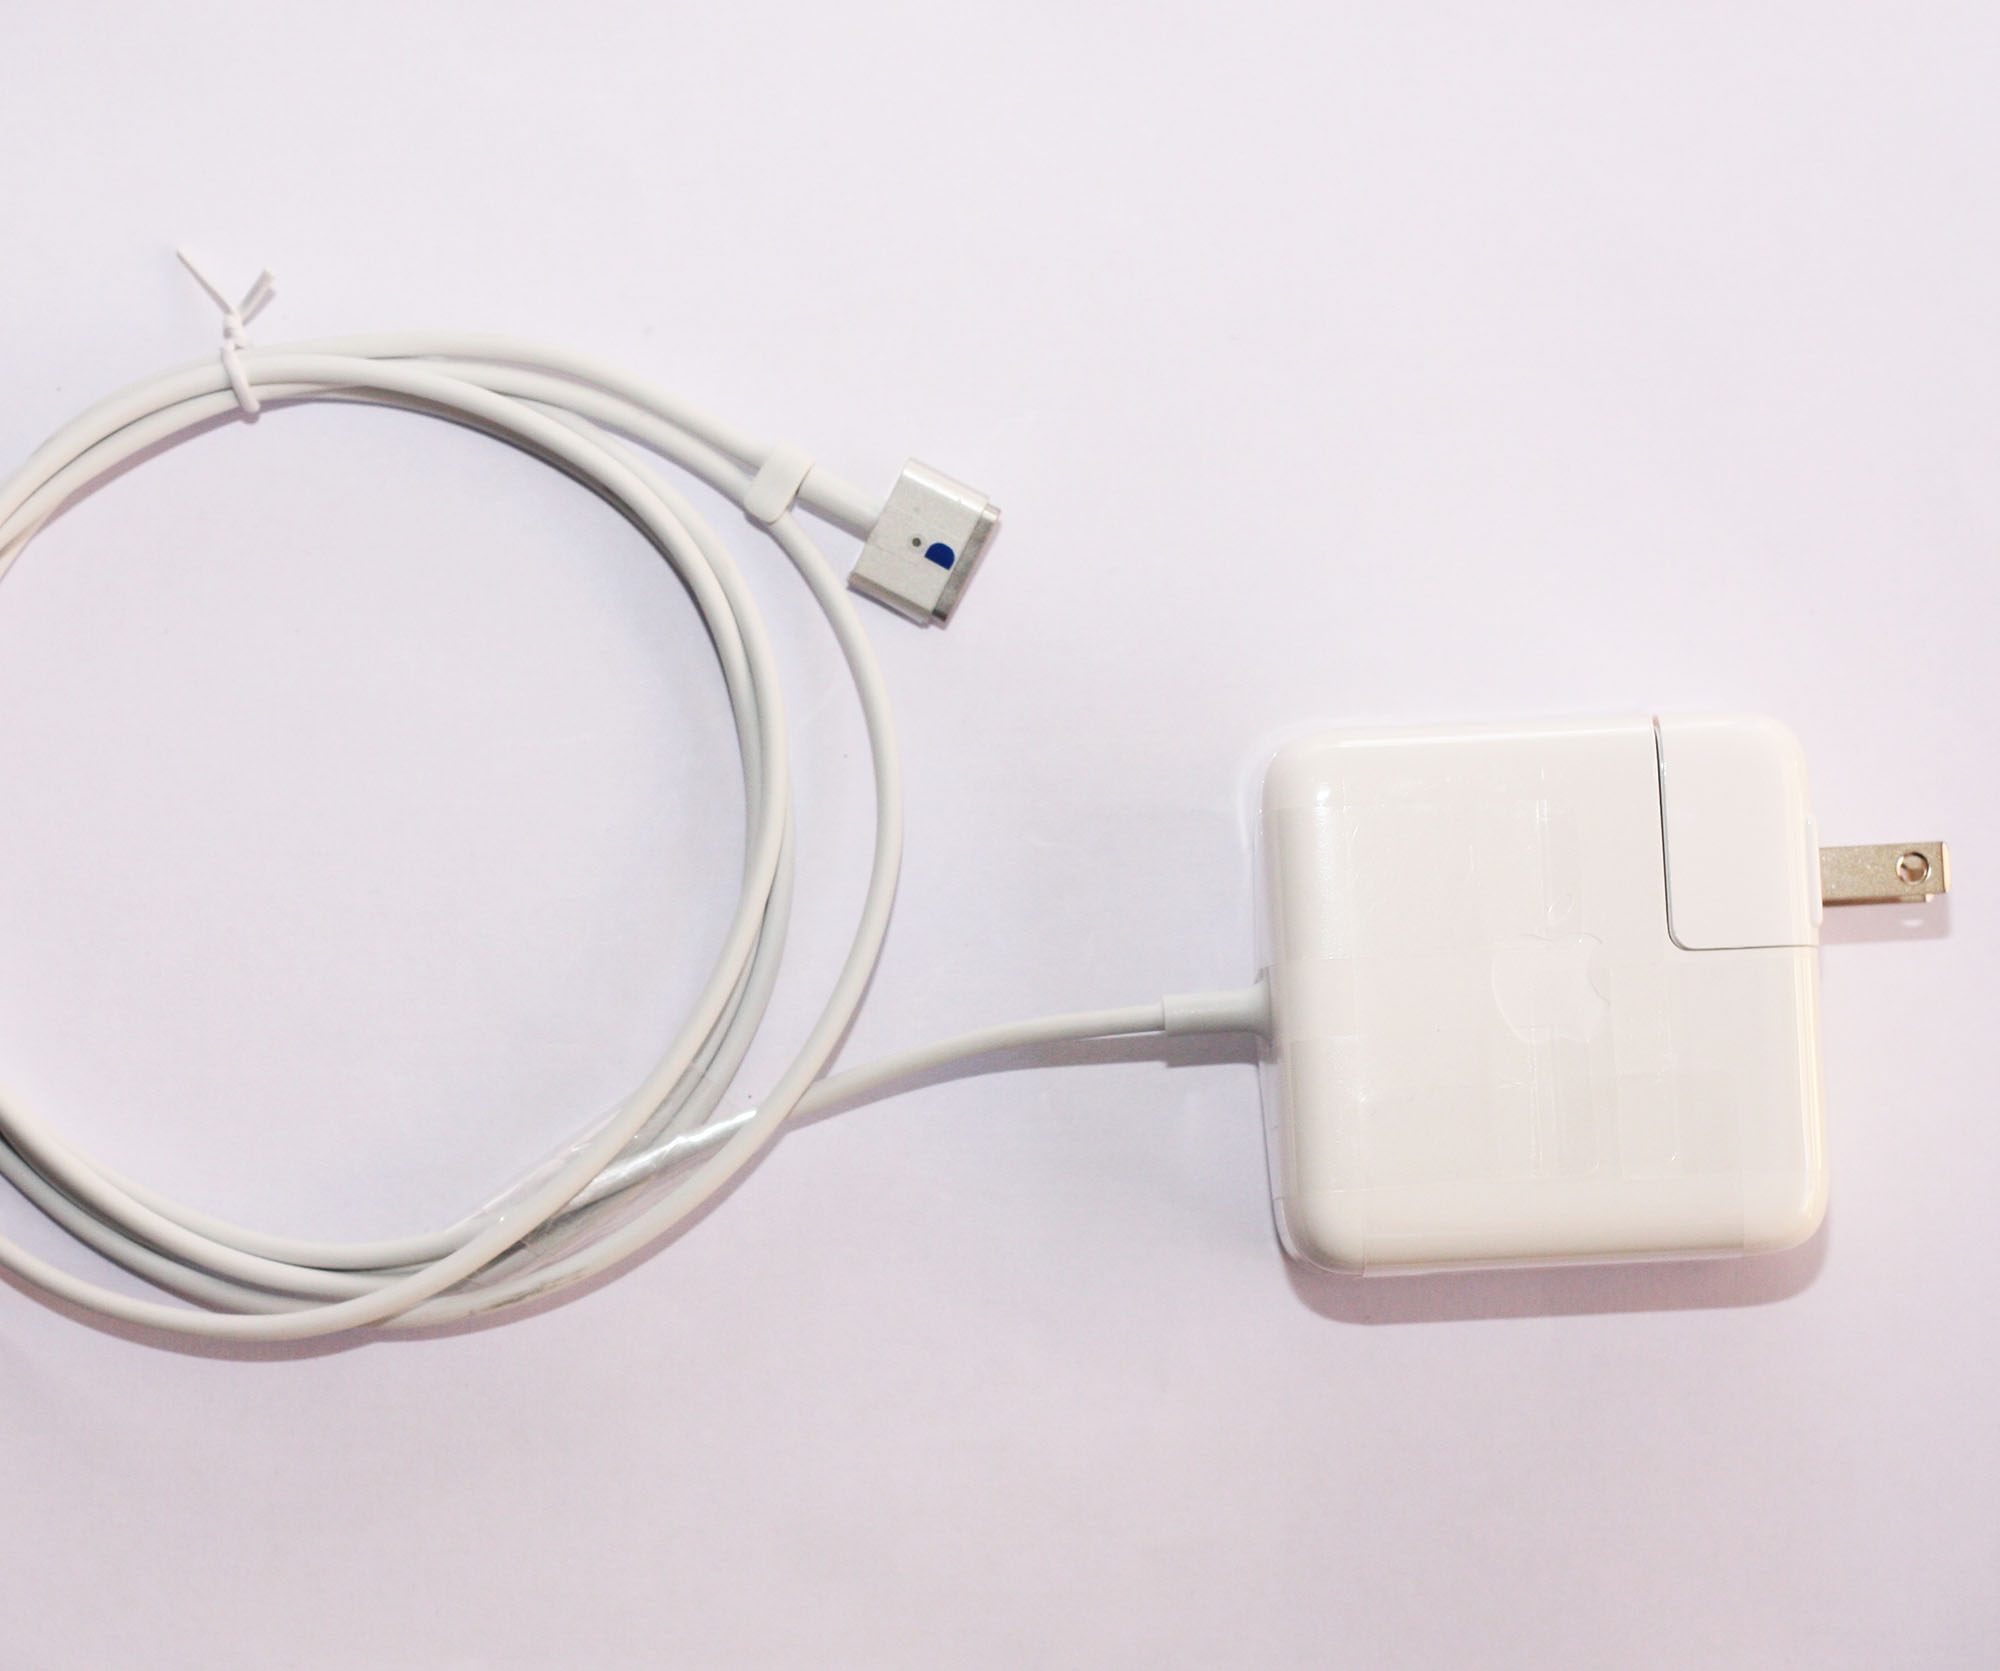 Sạc Macbook 45W 2012